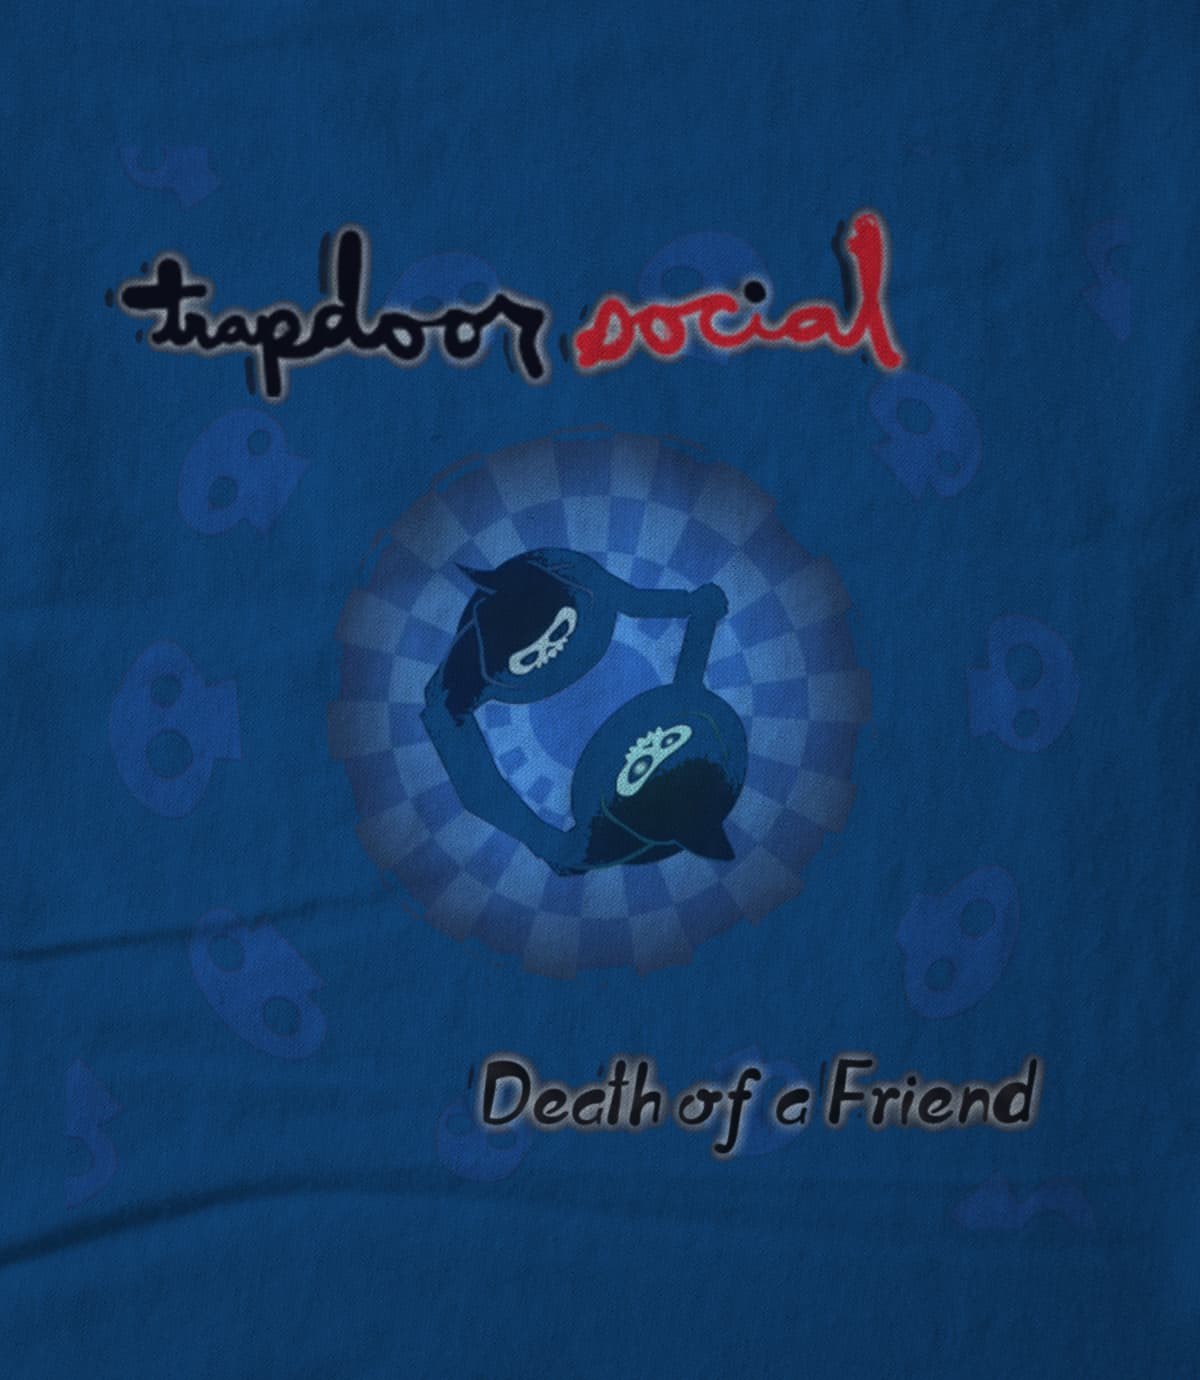 Trapdoor social death of a friend album   black 1481010371